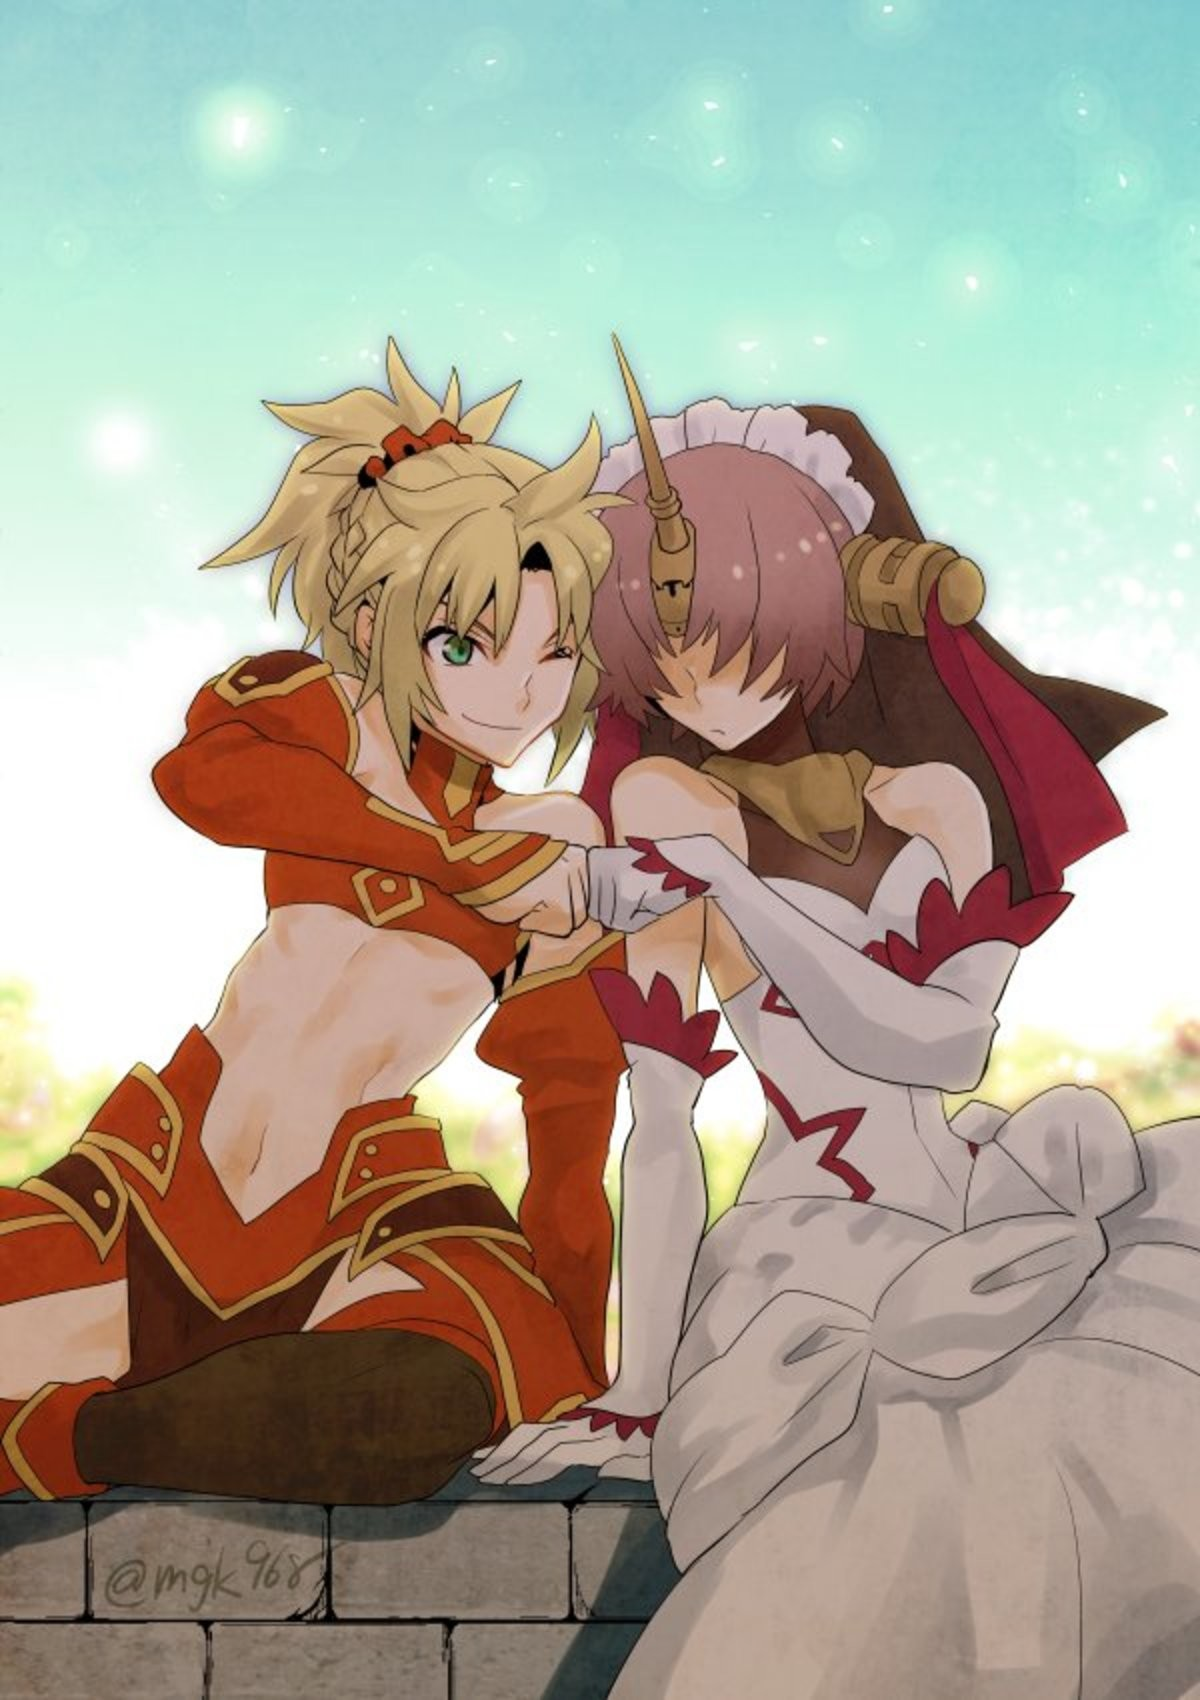 Mordred and Fran Fistbumping. Source First Picture https://twitter.com/mgk968/status/991627733384884225 Second Picture theapocryphacmeng/ https://twitter.com/im